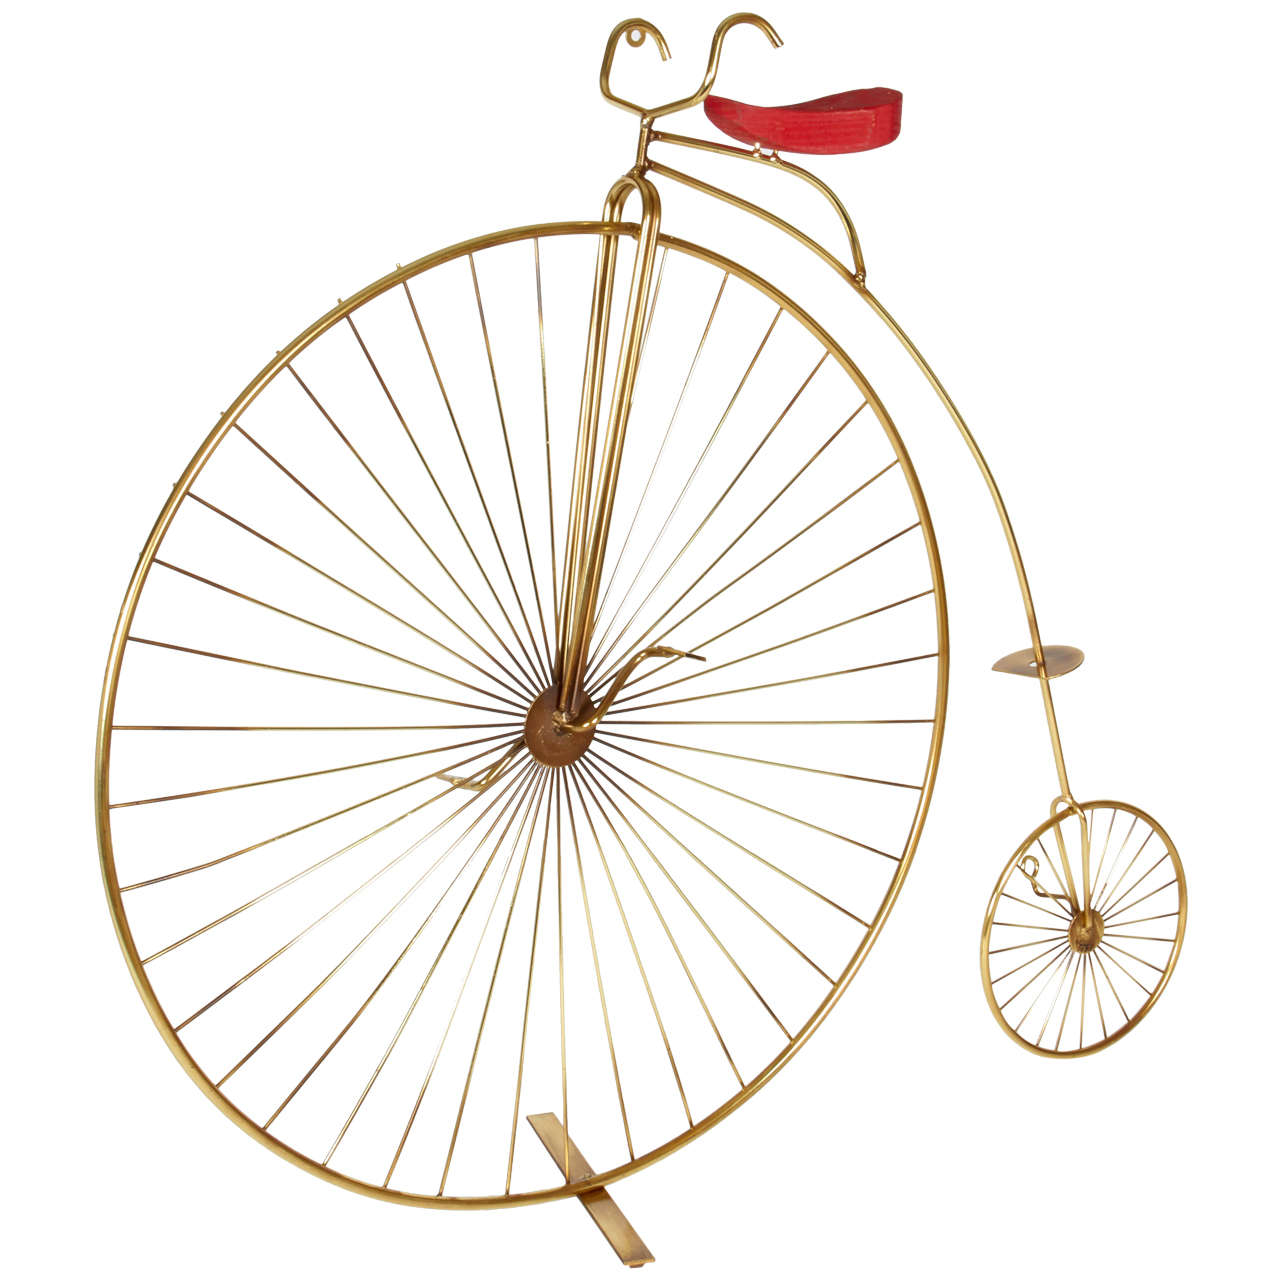 Curtis Jere Bicycle Tabletop or Wall Sculpture For Sale